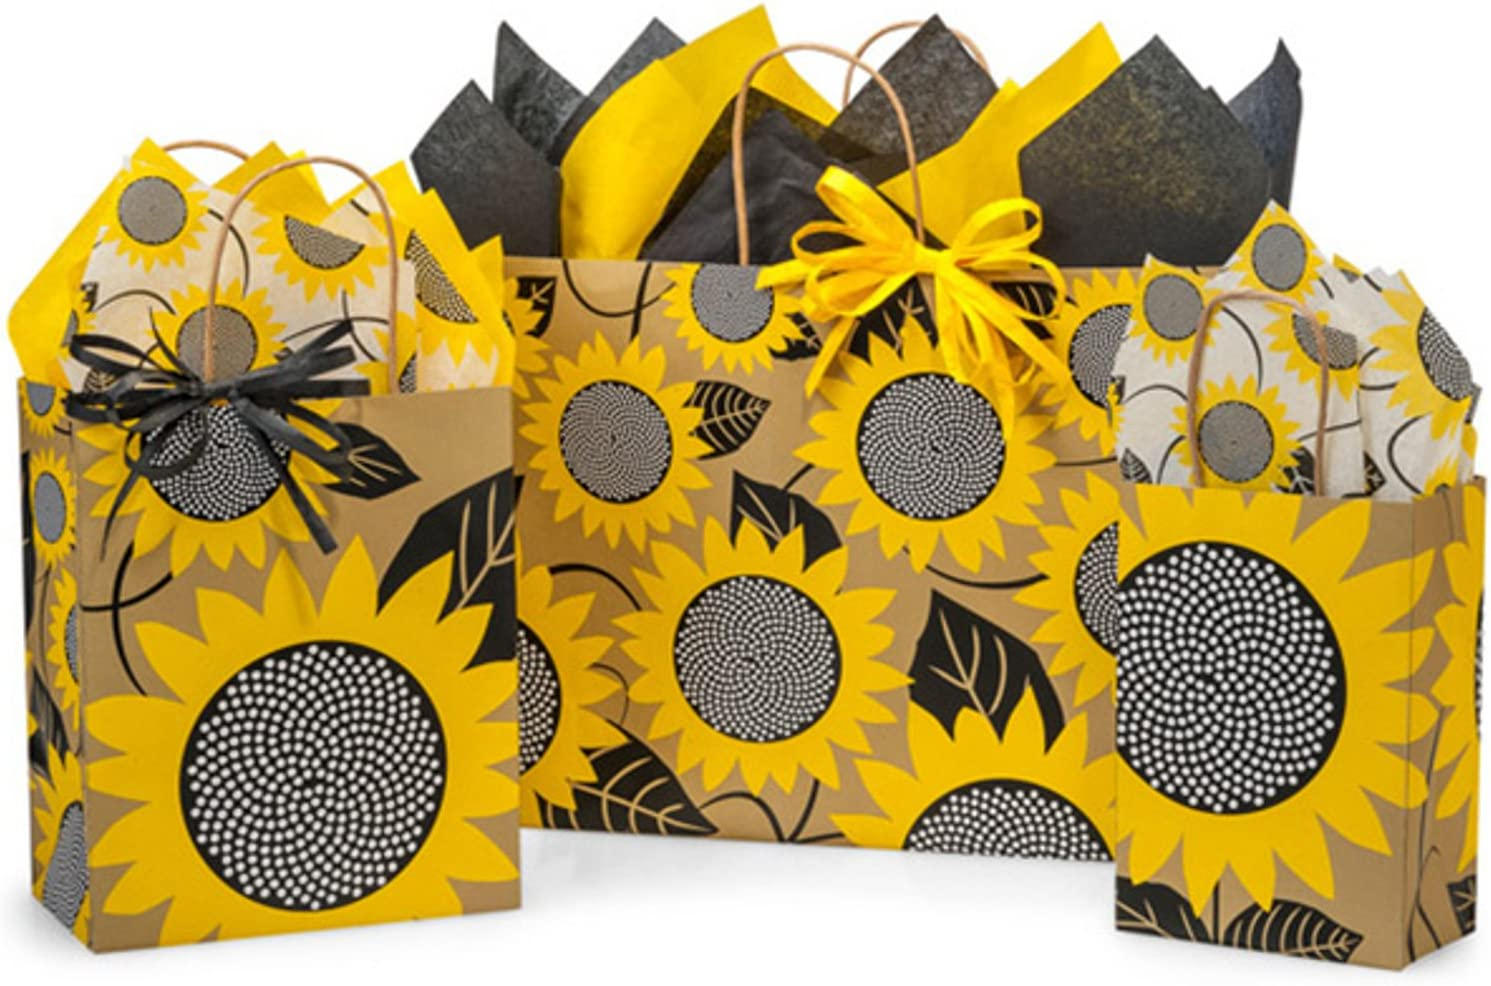 Gift Bags with Tissue Paper - Assorted Sizes with Coordinating Tissue Paper and Raffia Ribbon (Sunflower Fields)